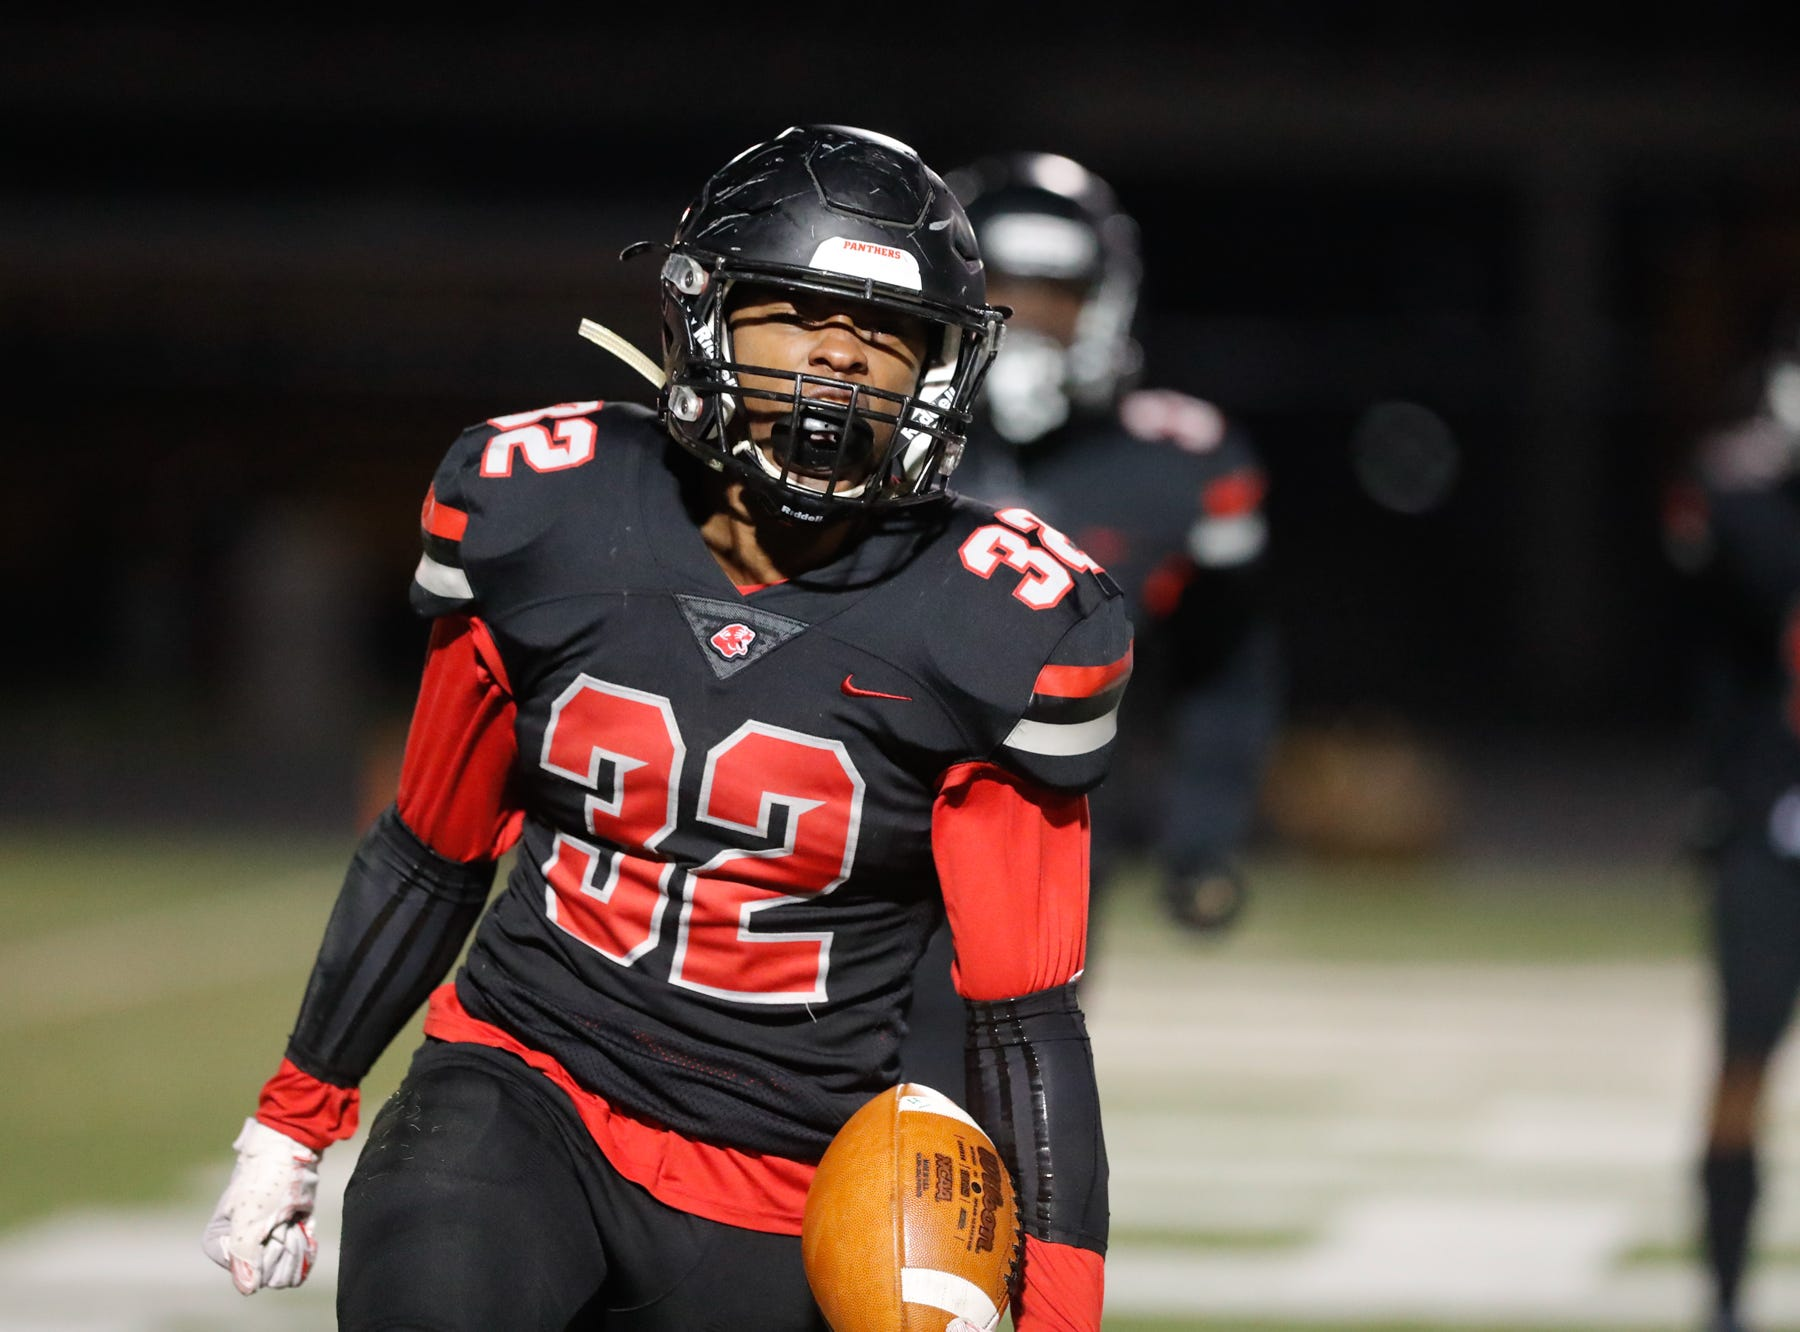 The North Central High School Panther's running back,  Alexander Tarver (32), celebrates a touchdown during a regional finals game against the against the Warren Central High School Warriors at North Central High School on Friday, Nov. 9, 2018.